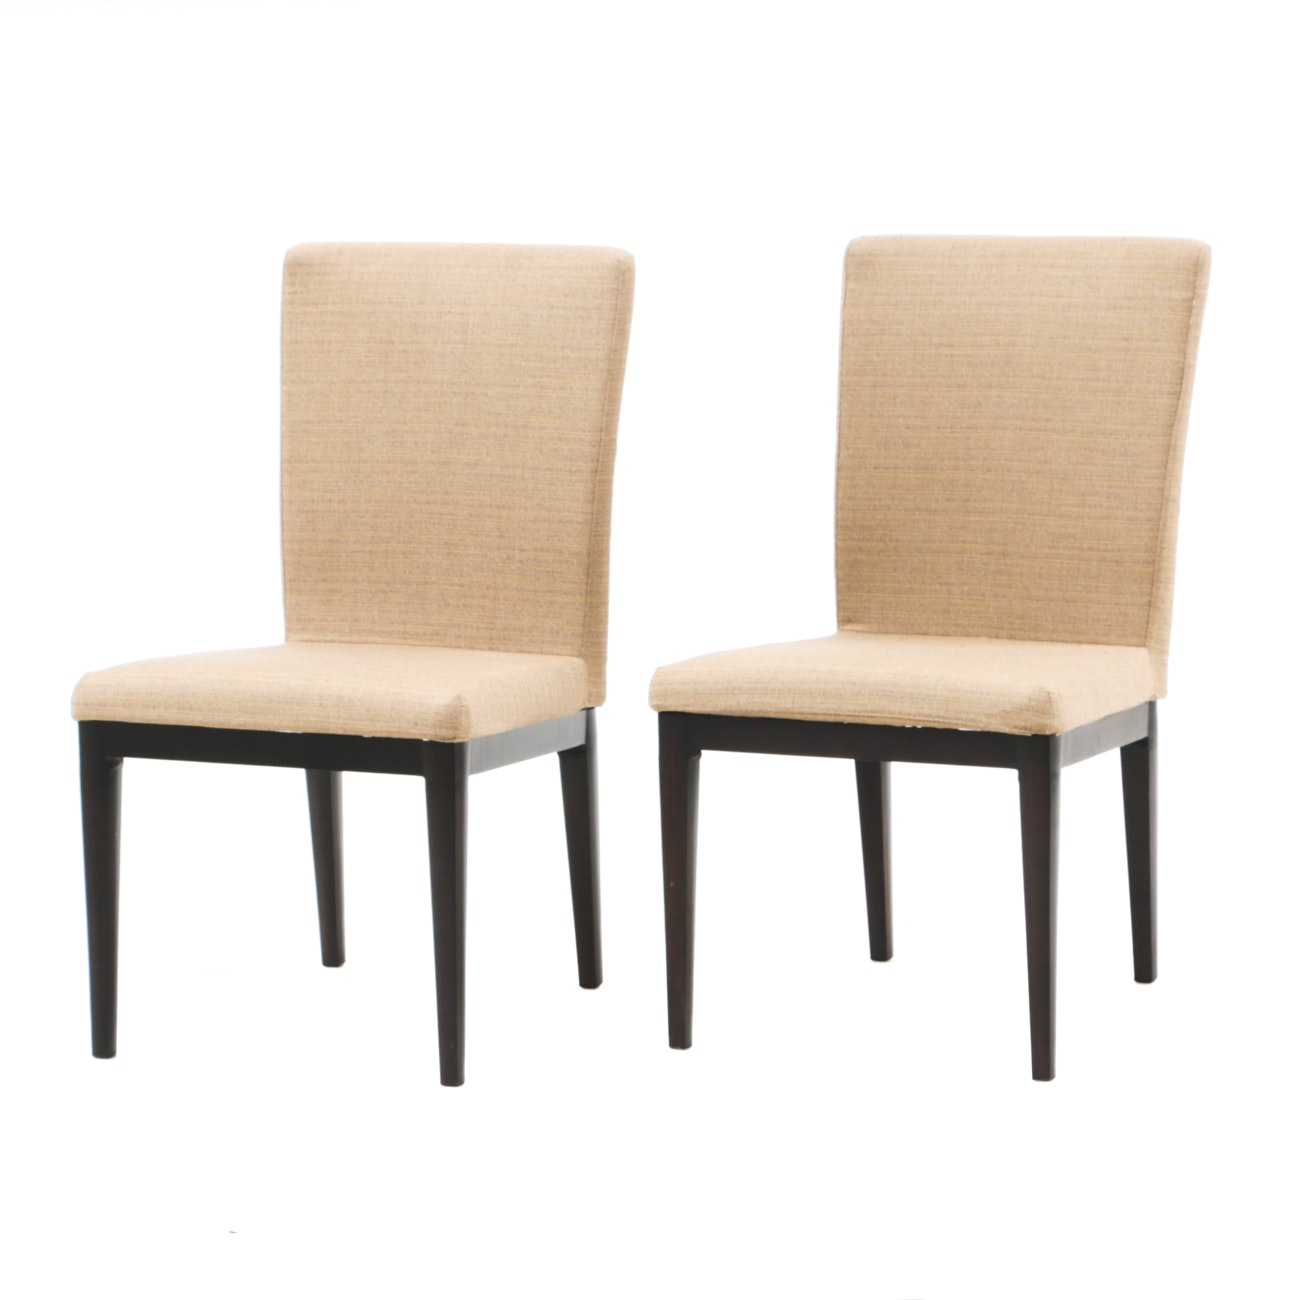 Pair of Sunbrella Outdoor Chairs